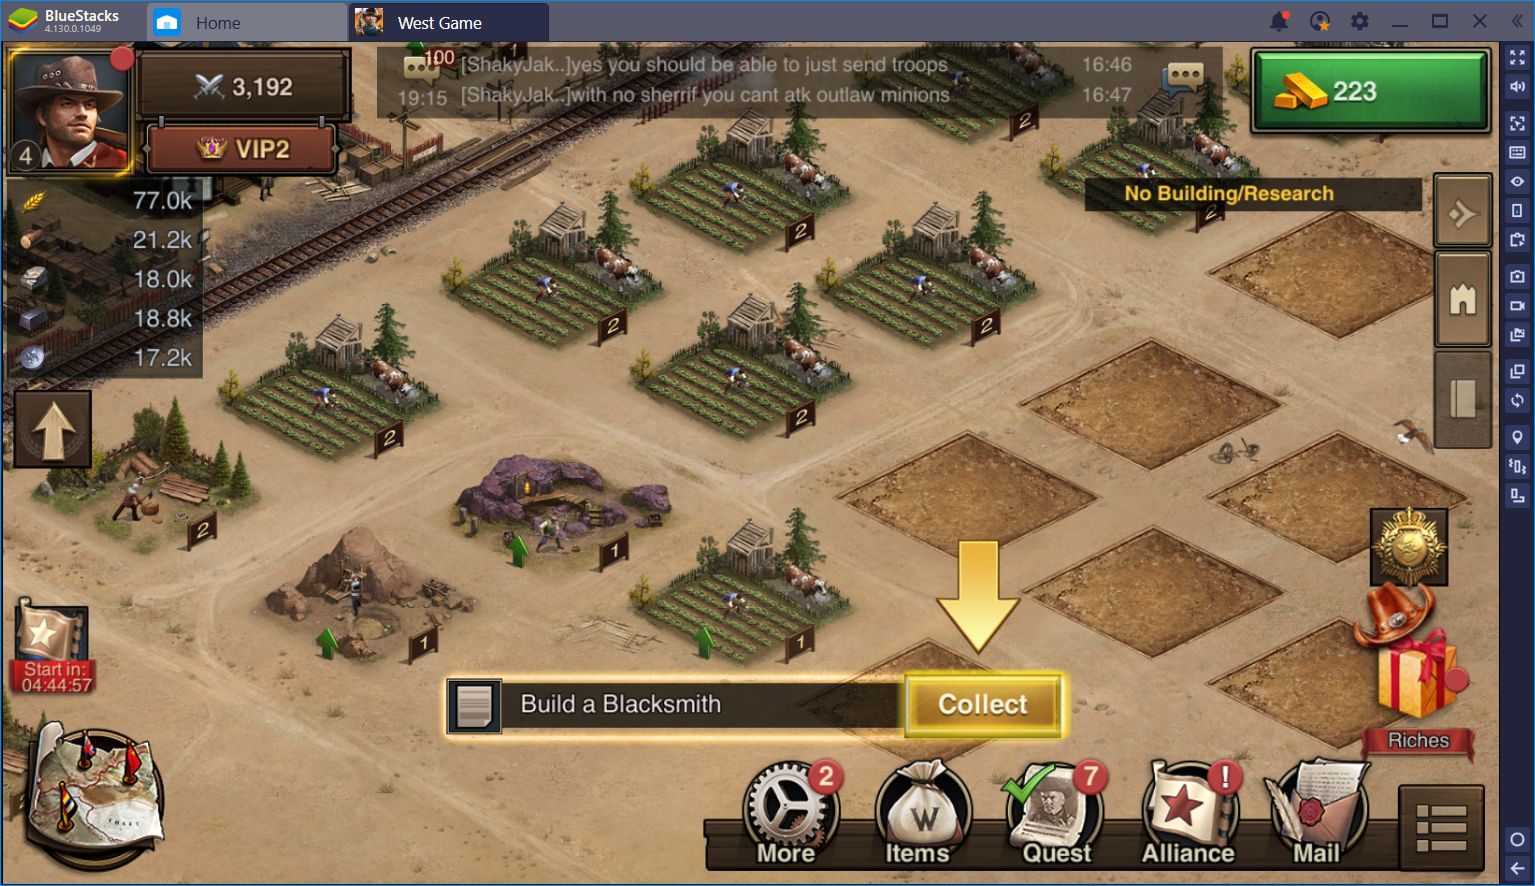 BlueStacks Guide for West Game: Keymapping Domination